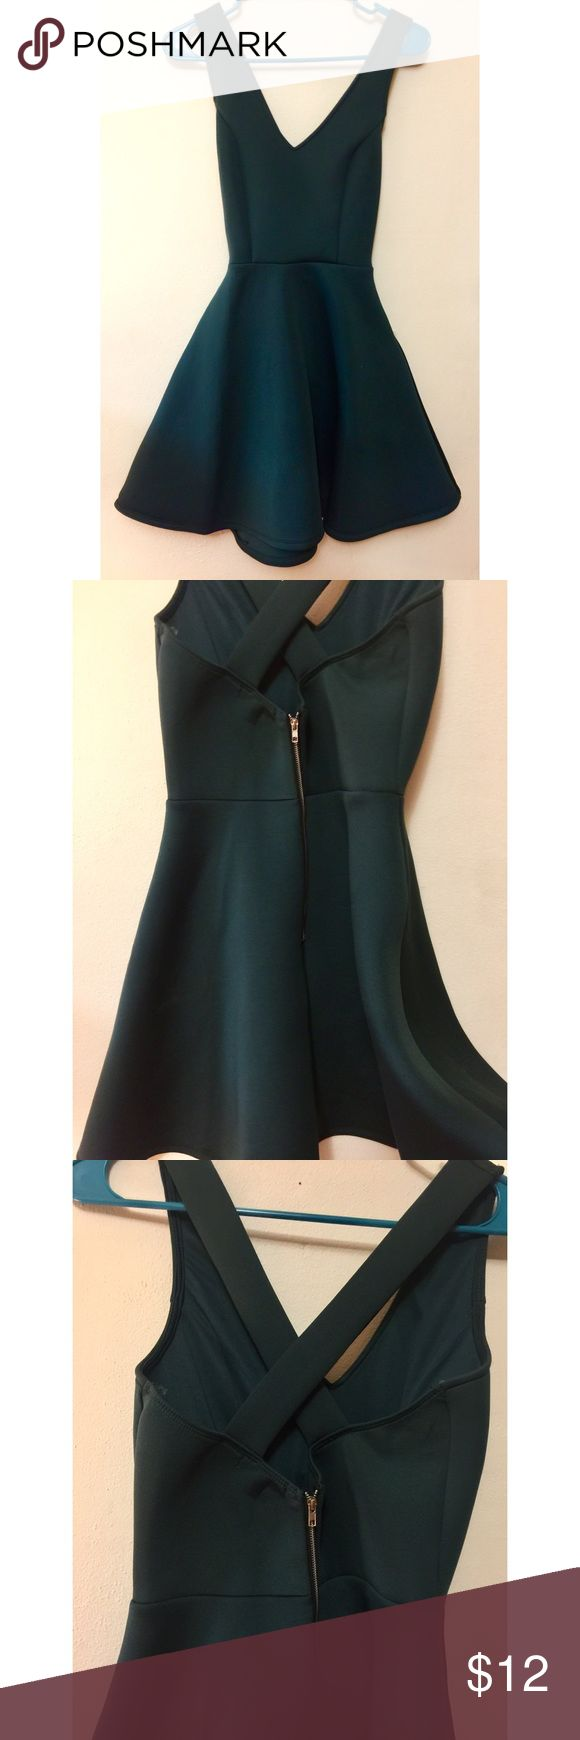 Charlotte Russe - Emerald Dress Beautiful dress only worn once for Christmas dinner. This dress is actually really interesting! The material is soft and foam-like which makes the skirt of the dress stay flared out.  Very comfortable dress. Cute criss cross in the back. Zipper located in the back. Charlotte Russe Dresses Mini